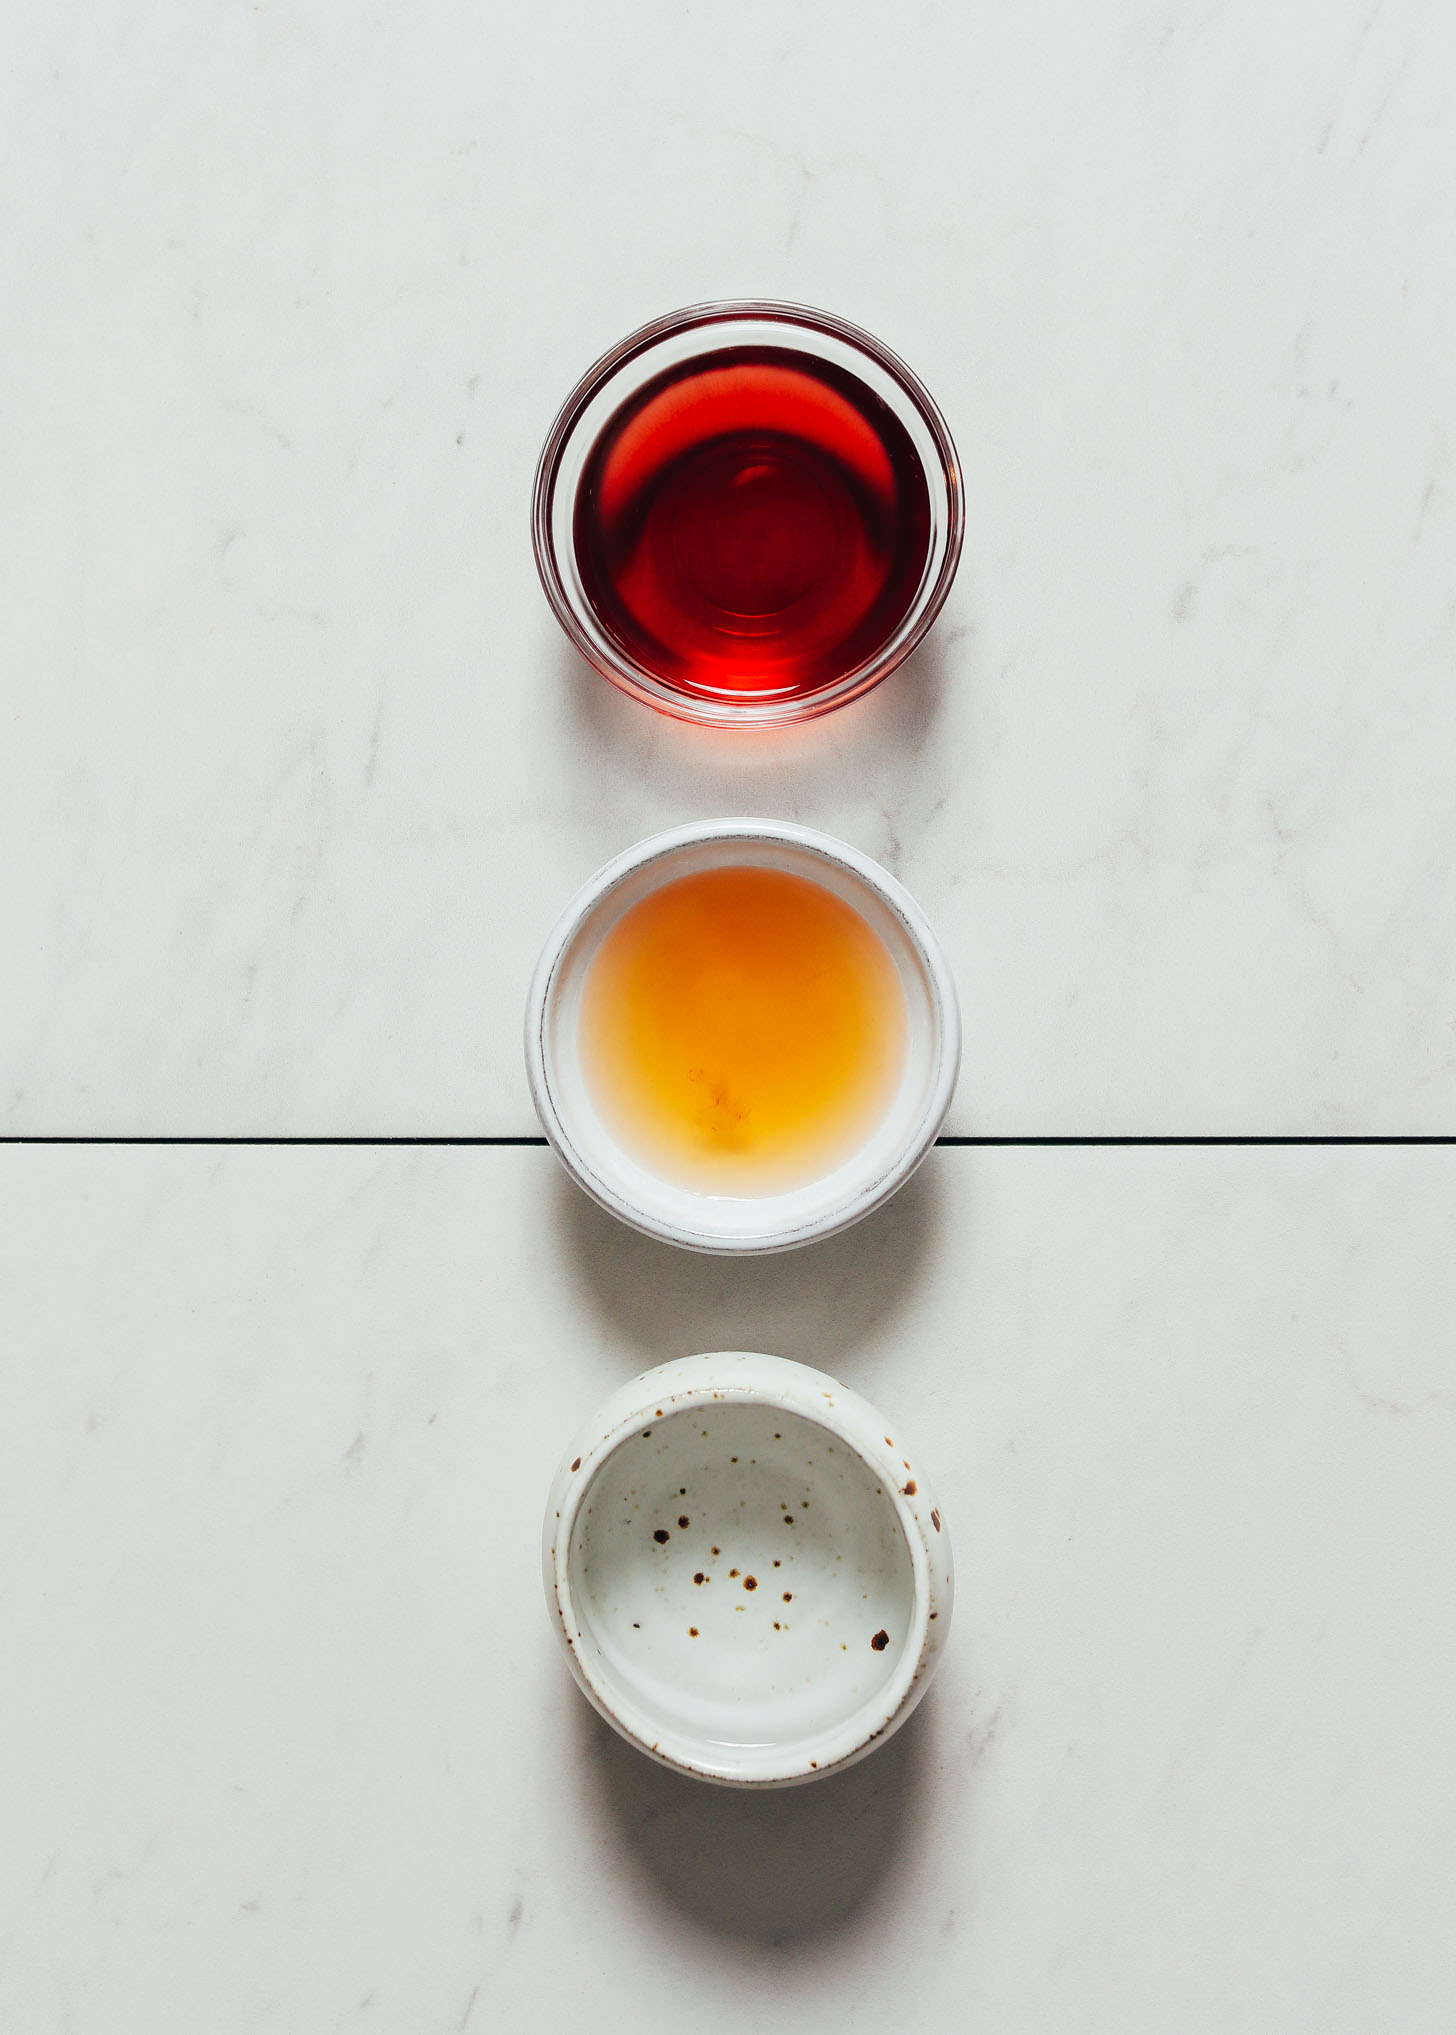 Three bowls of different types of vinegars for making Quick Pickled Vegetables